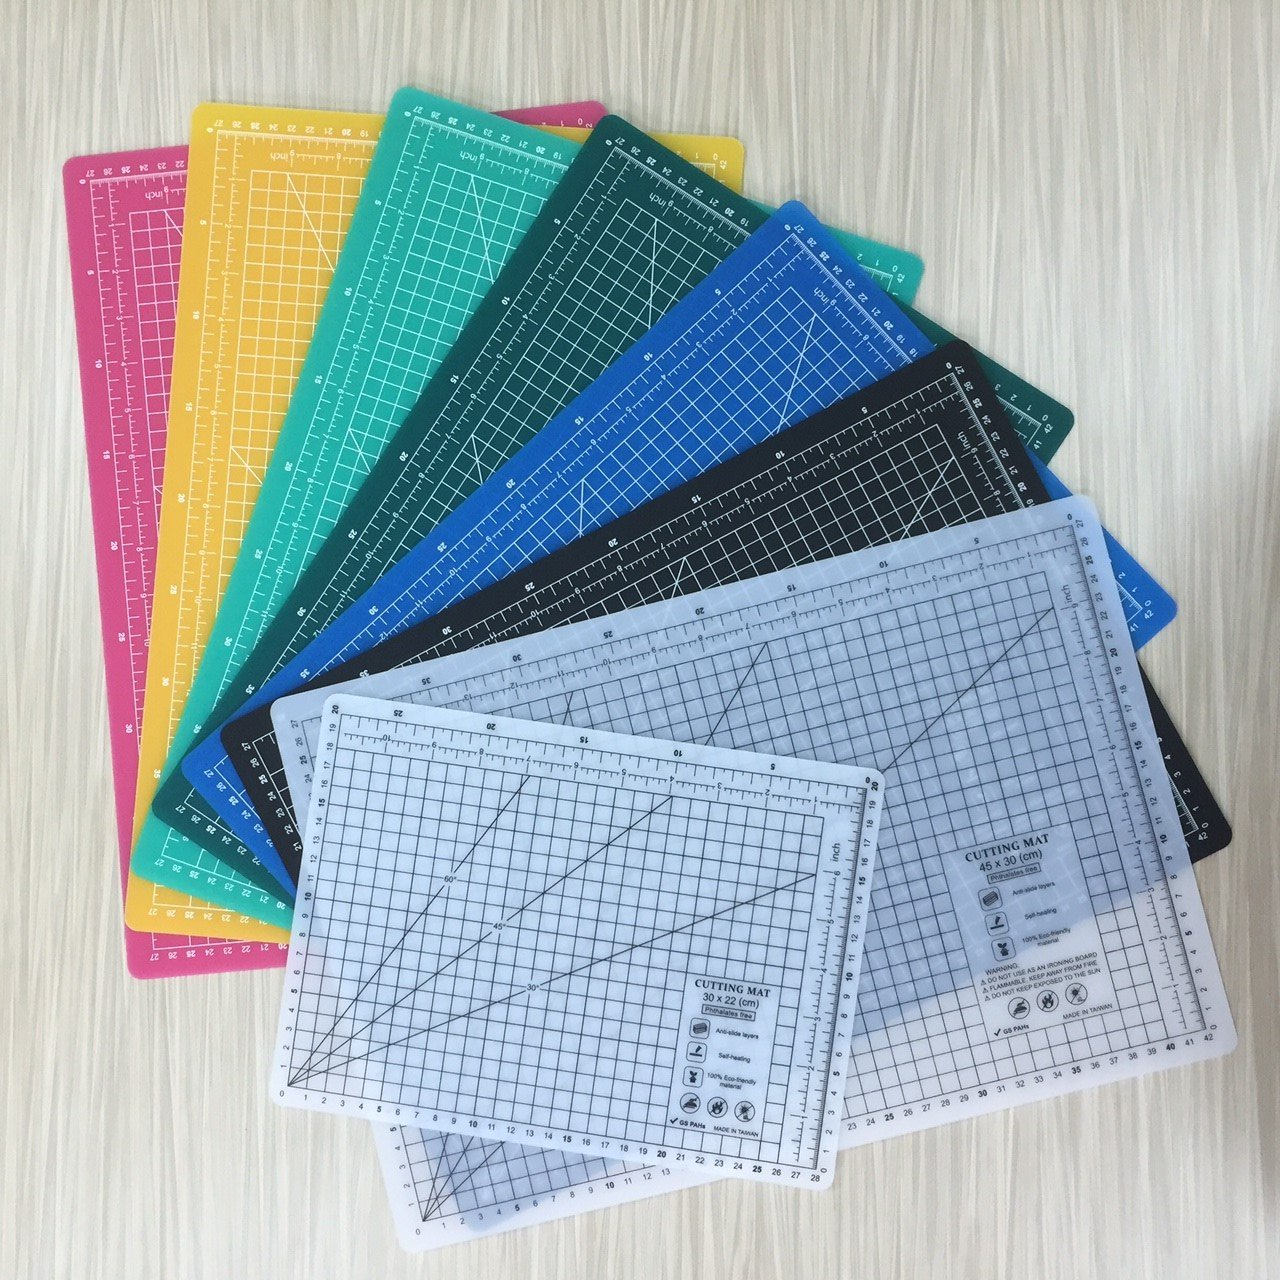 A1 (36L x 24W Inch) (900 x 600 mm) Self Healing Eco Friendly Colorful Cutting Mat (Blue) Yuen Young Plastics Co. Ltd A25A1